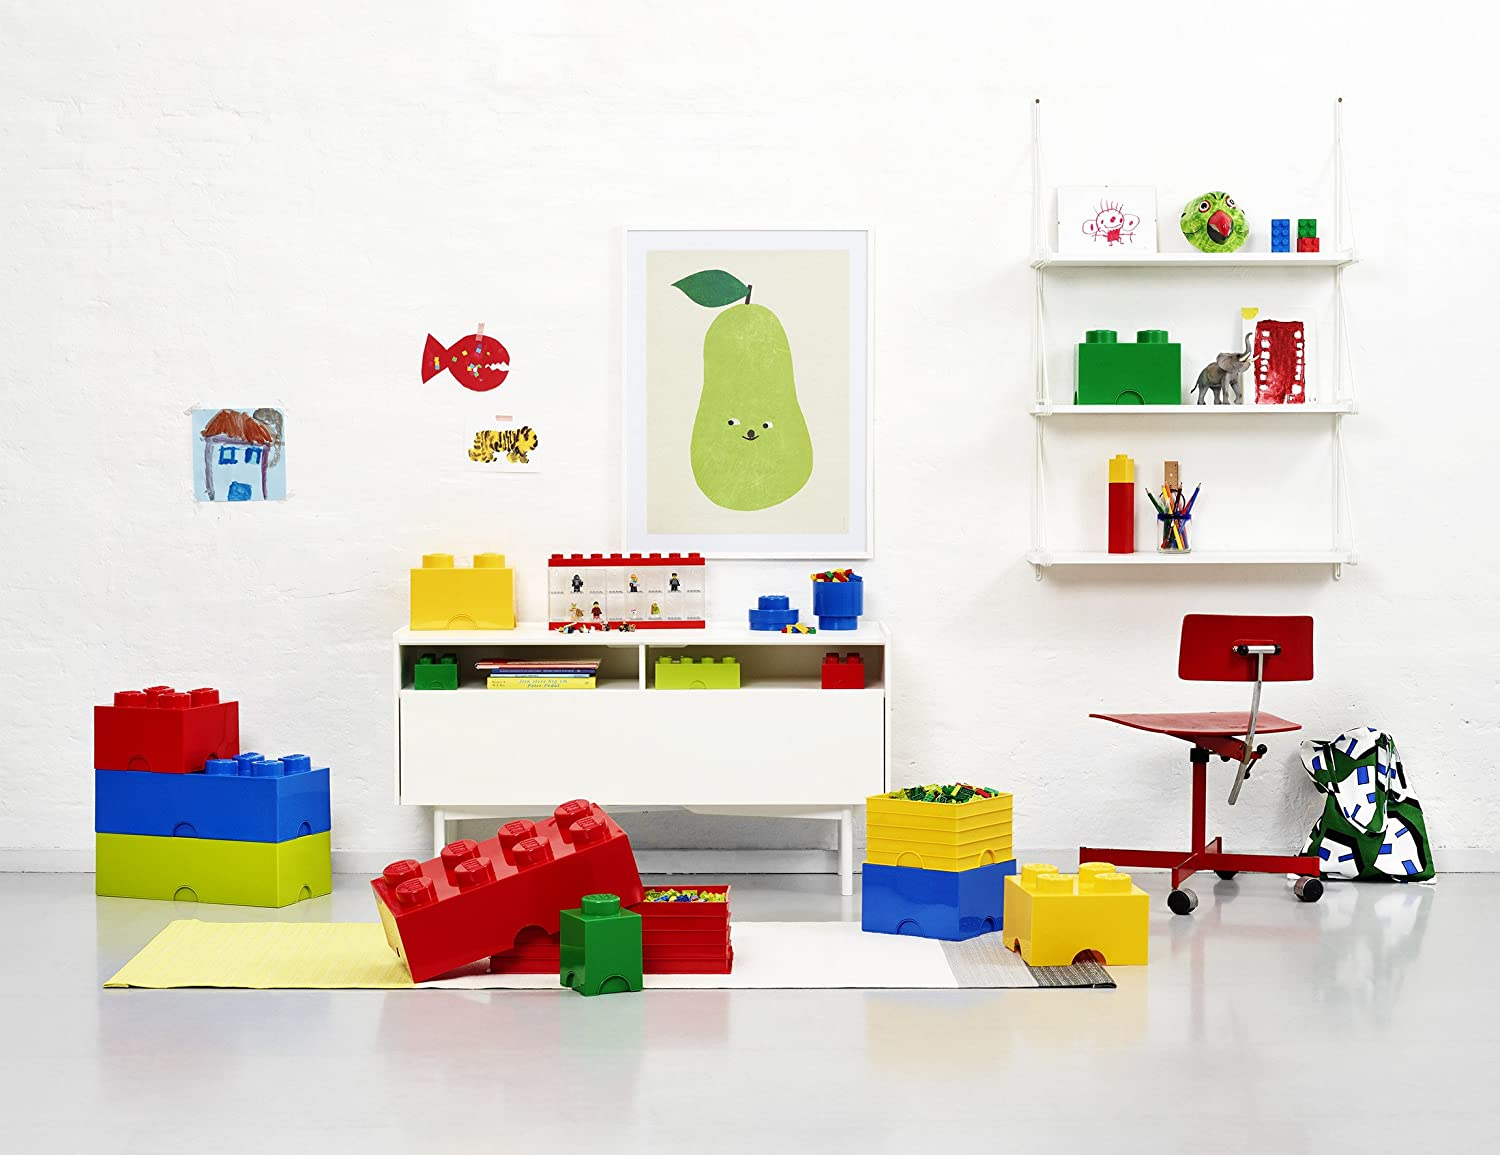 sc 1 st  Amazon.com & Amazon.com: LEGO Storage Brick 4 Blue: Room Copenhagen: Toys u0026 Games